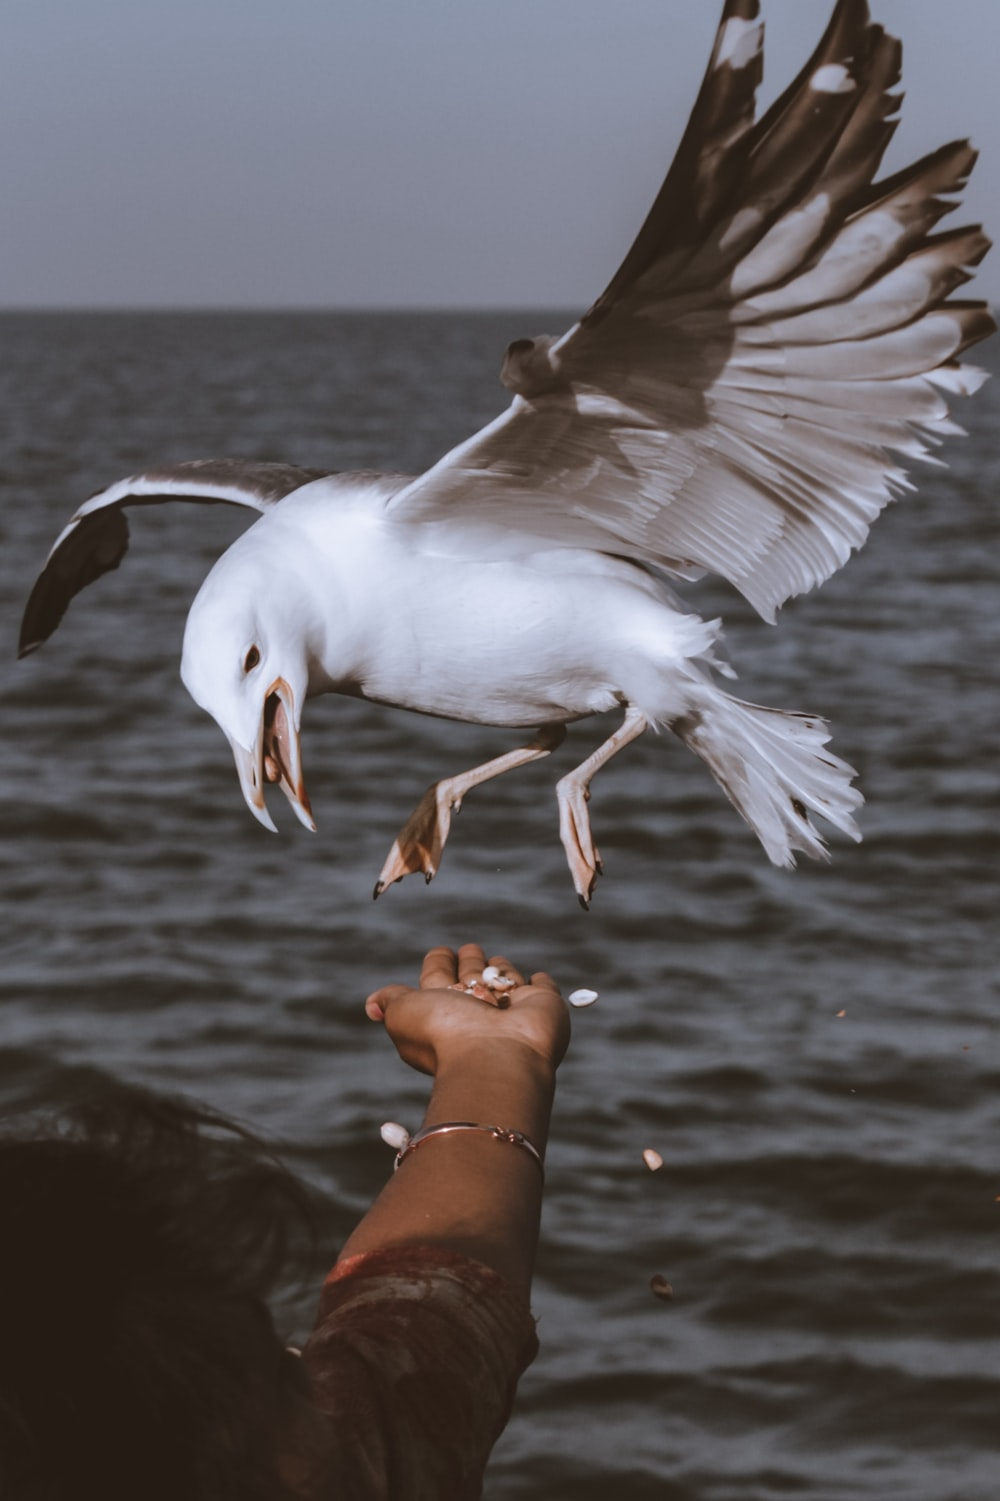 white bird on persons hand